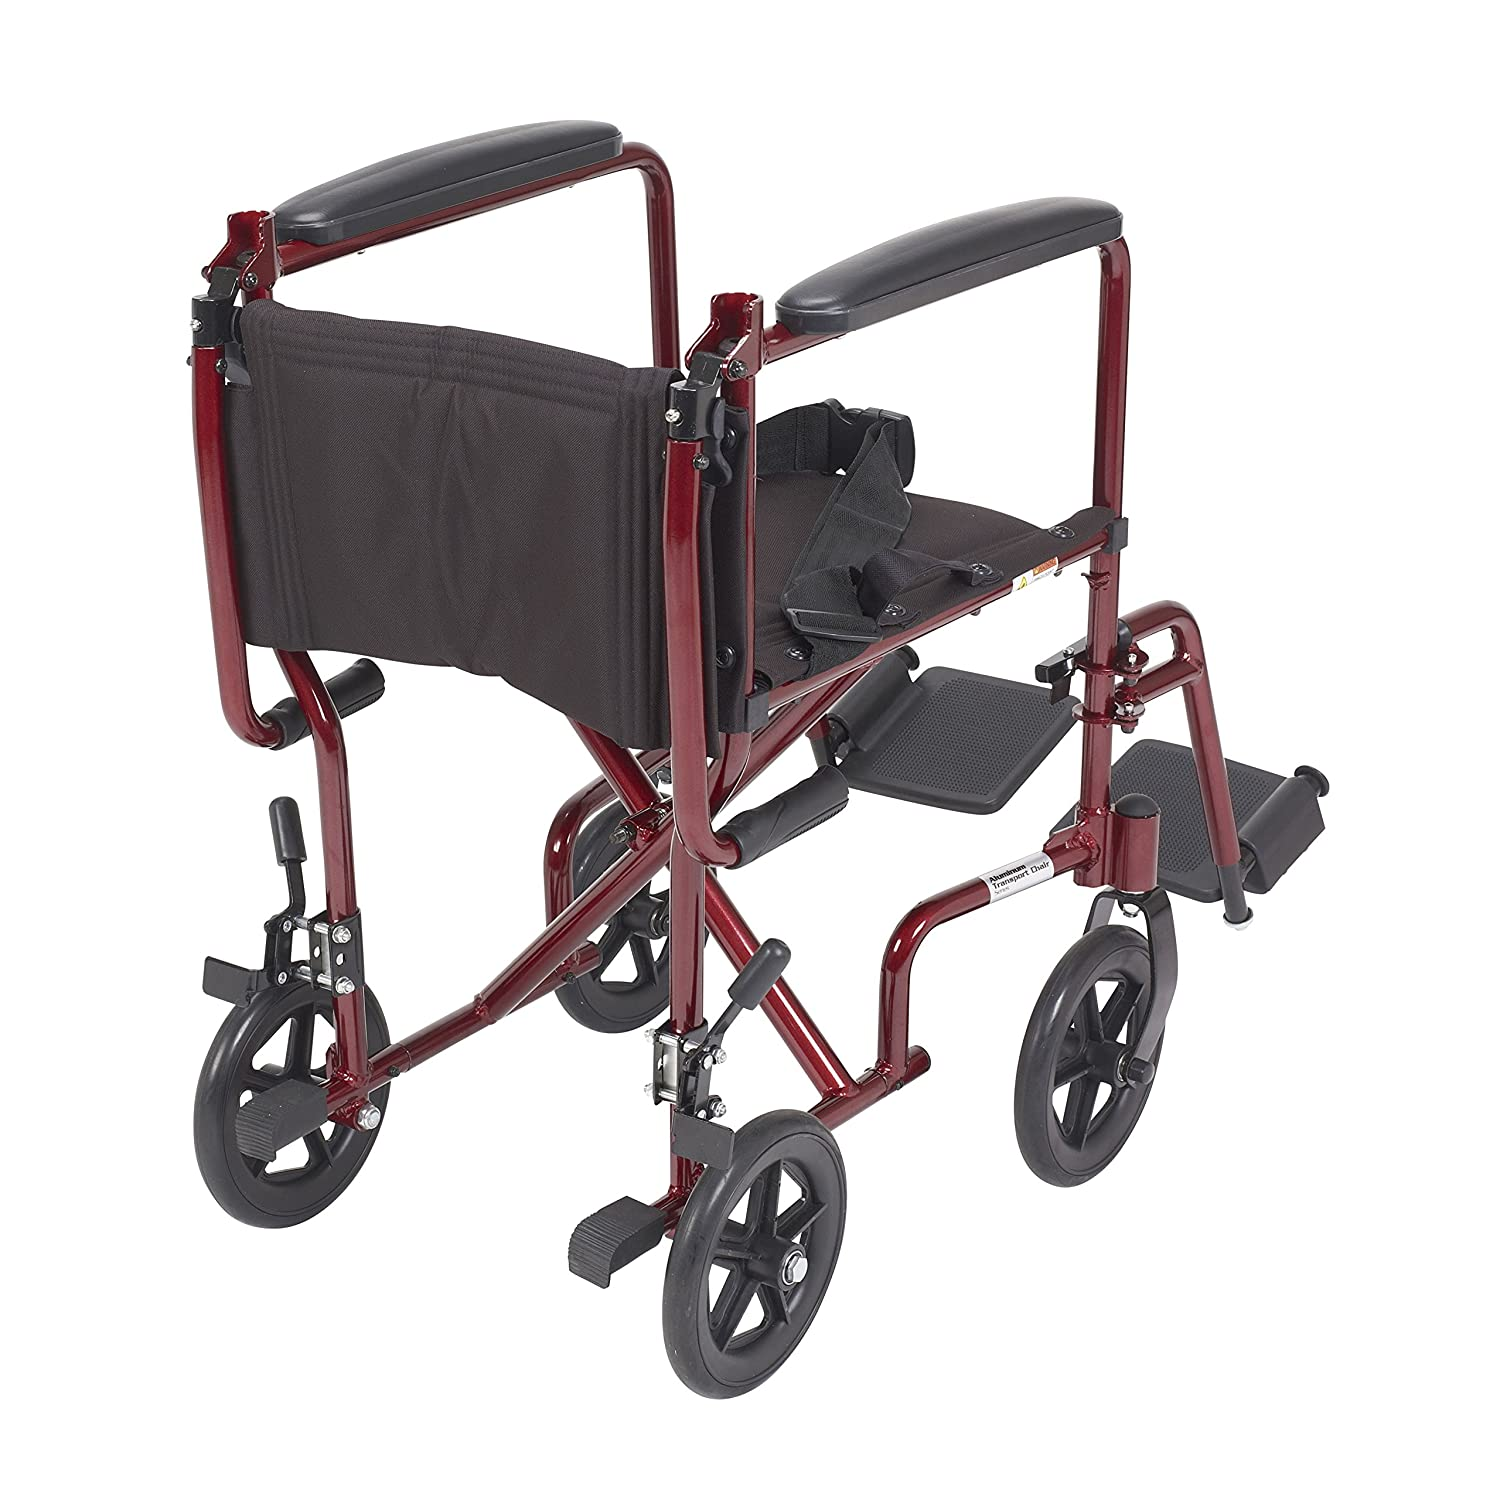 Transport chair amazon - Amazon Com Drive Medical Deluxe Lightweight Aluminum Transport Wheelchair Red 17 Health Personal Care